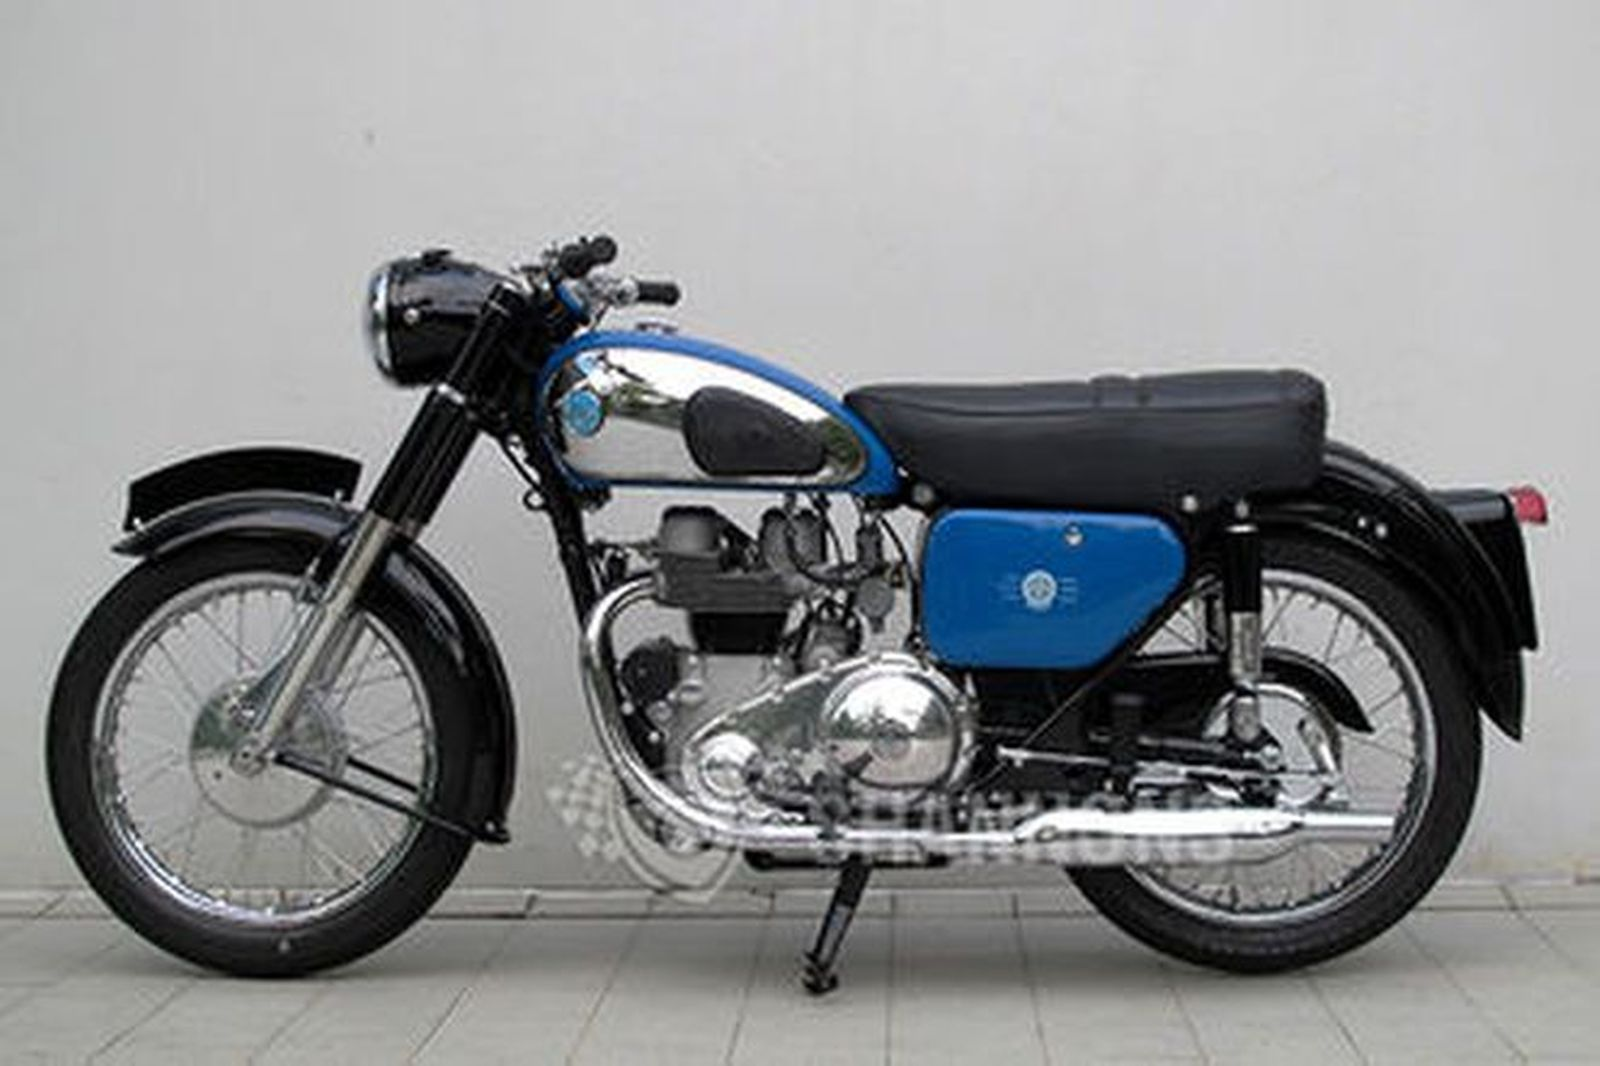 Sold: AJS Model 20 500cc Motorcycle Auctions